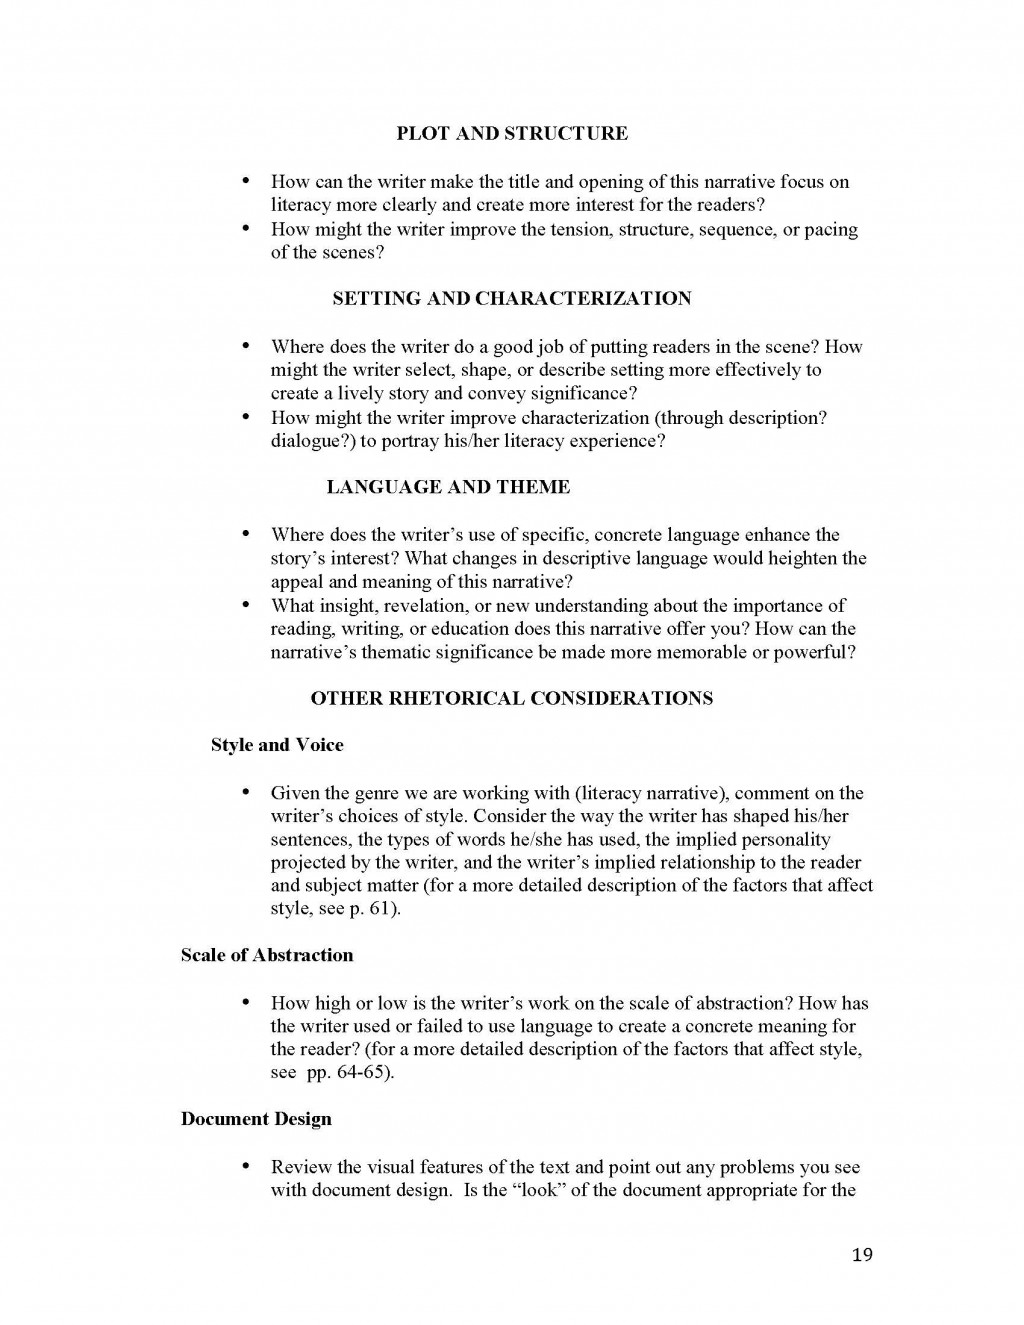 015 Narrative Essay Definition Example Unit 1 Literacy Instructor Copy Page 19 Stunning Pdf Literature Slideshare Large